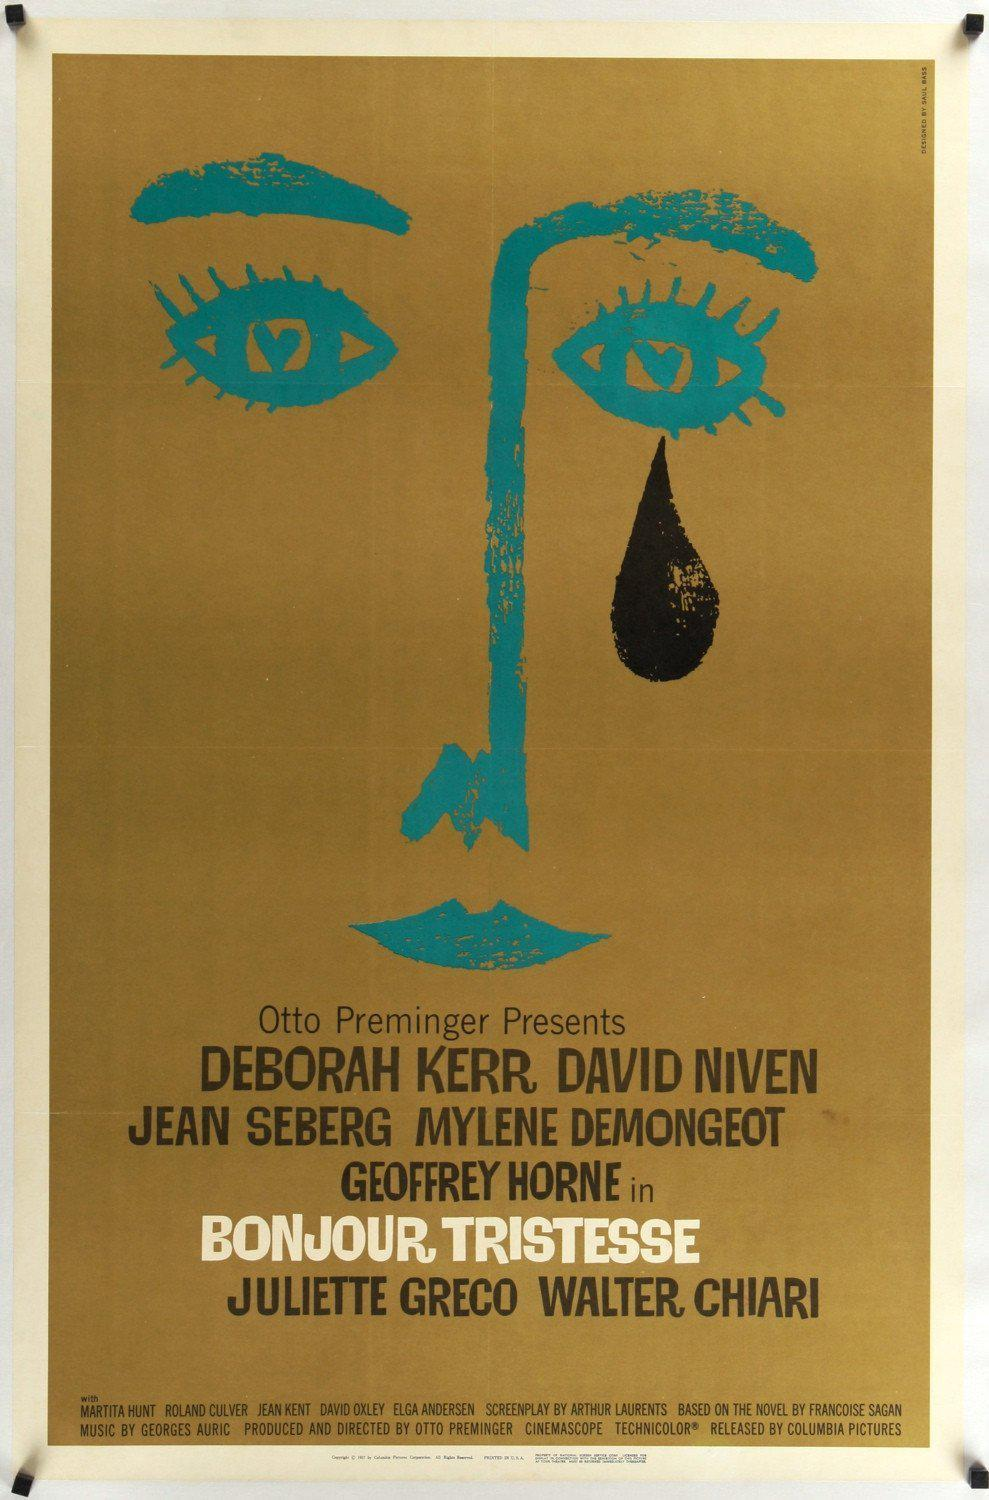 Bonjour Tristesse 1 Sheet (27x41) Original Vintage Movie Poster